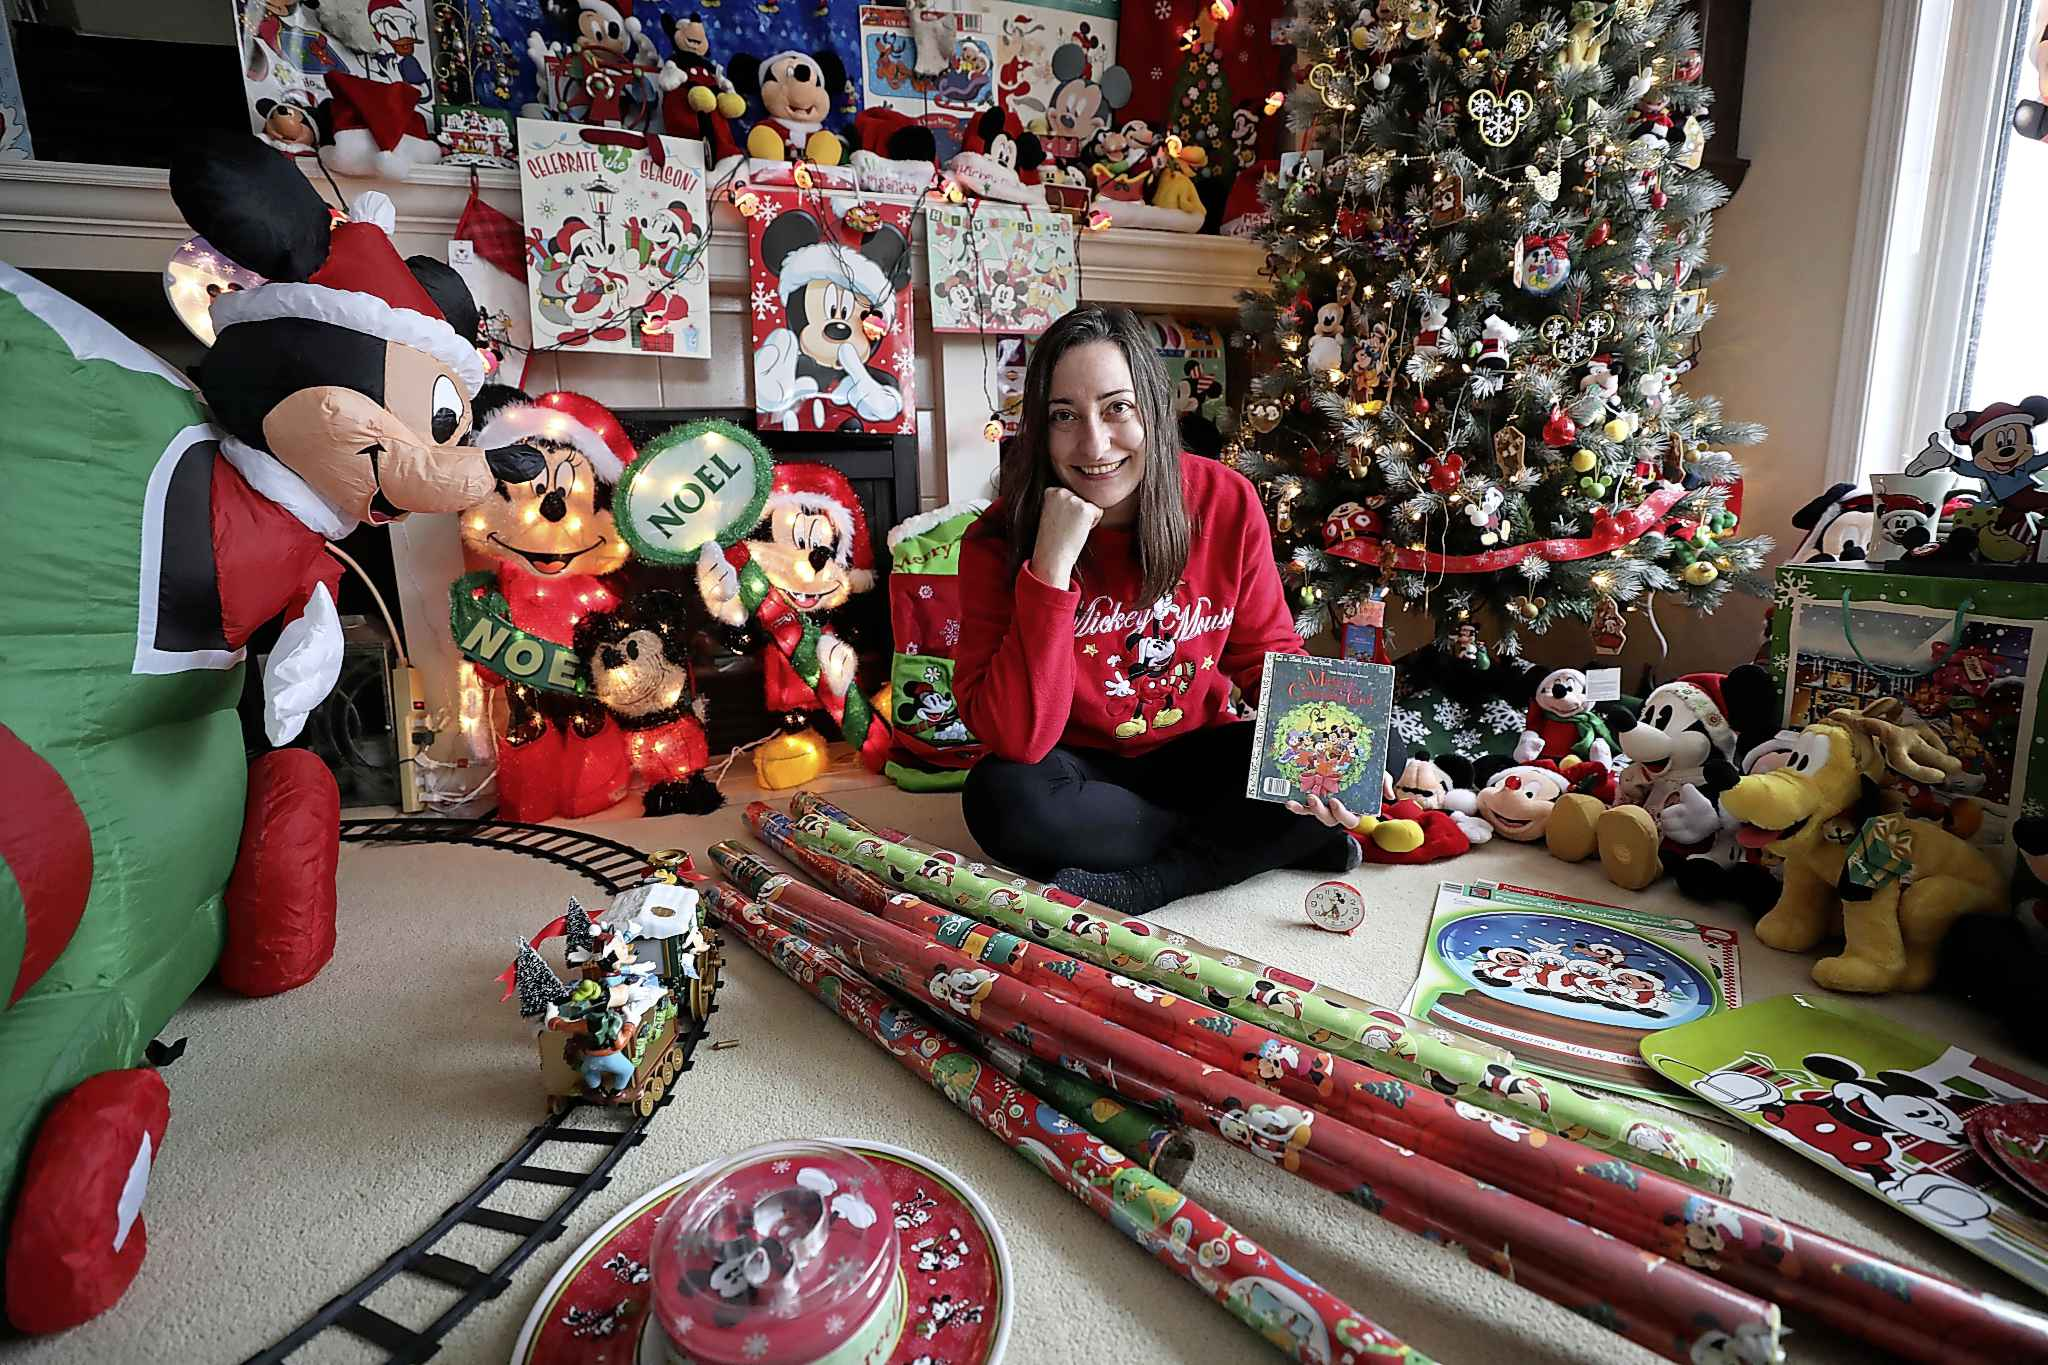 Michelle Bradley-Bahuaud has a collection of Mickey Mouse memorabilia that might even impress the folks at Disney. (Ruth Bonneville / Winnipeg Free Press)      INTERSECTION - Mickey Mouse    Photo of Michelle Bahuaud and her Mickey Mouse themed Christmas decorations in her living room.      Michelle Bahuaud's (Mickey's) incredibly large collection of  Mickey Mouse  items.    For a Christmas-y Intersection piece on Michelle, who goes by Mickey, who collects Mickey Mouse paraphernalia. She has shelves, cabinets and even an entire room in her home devoted to her favourite mouse.  She has decorated her entire Christmas tree and her living room for Christmas this year, exclusively with her MM ornaments, etc.       See Dave Sanderson story.     Nov 25th   2019